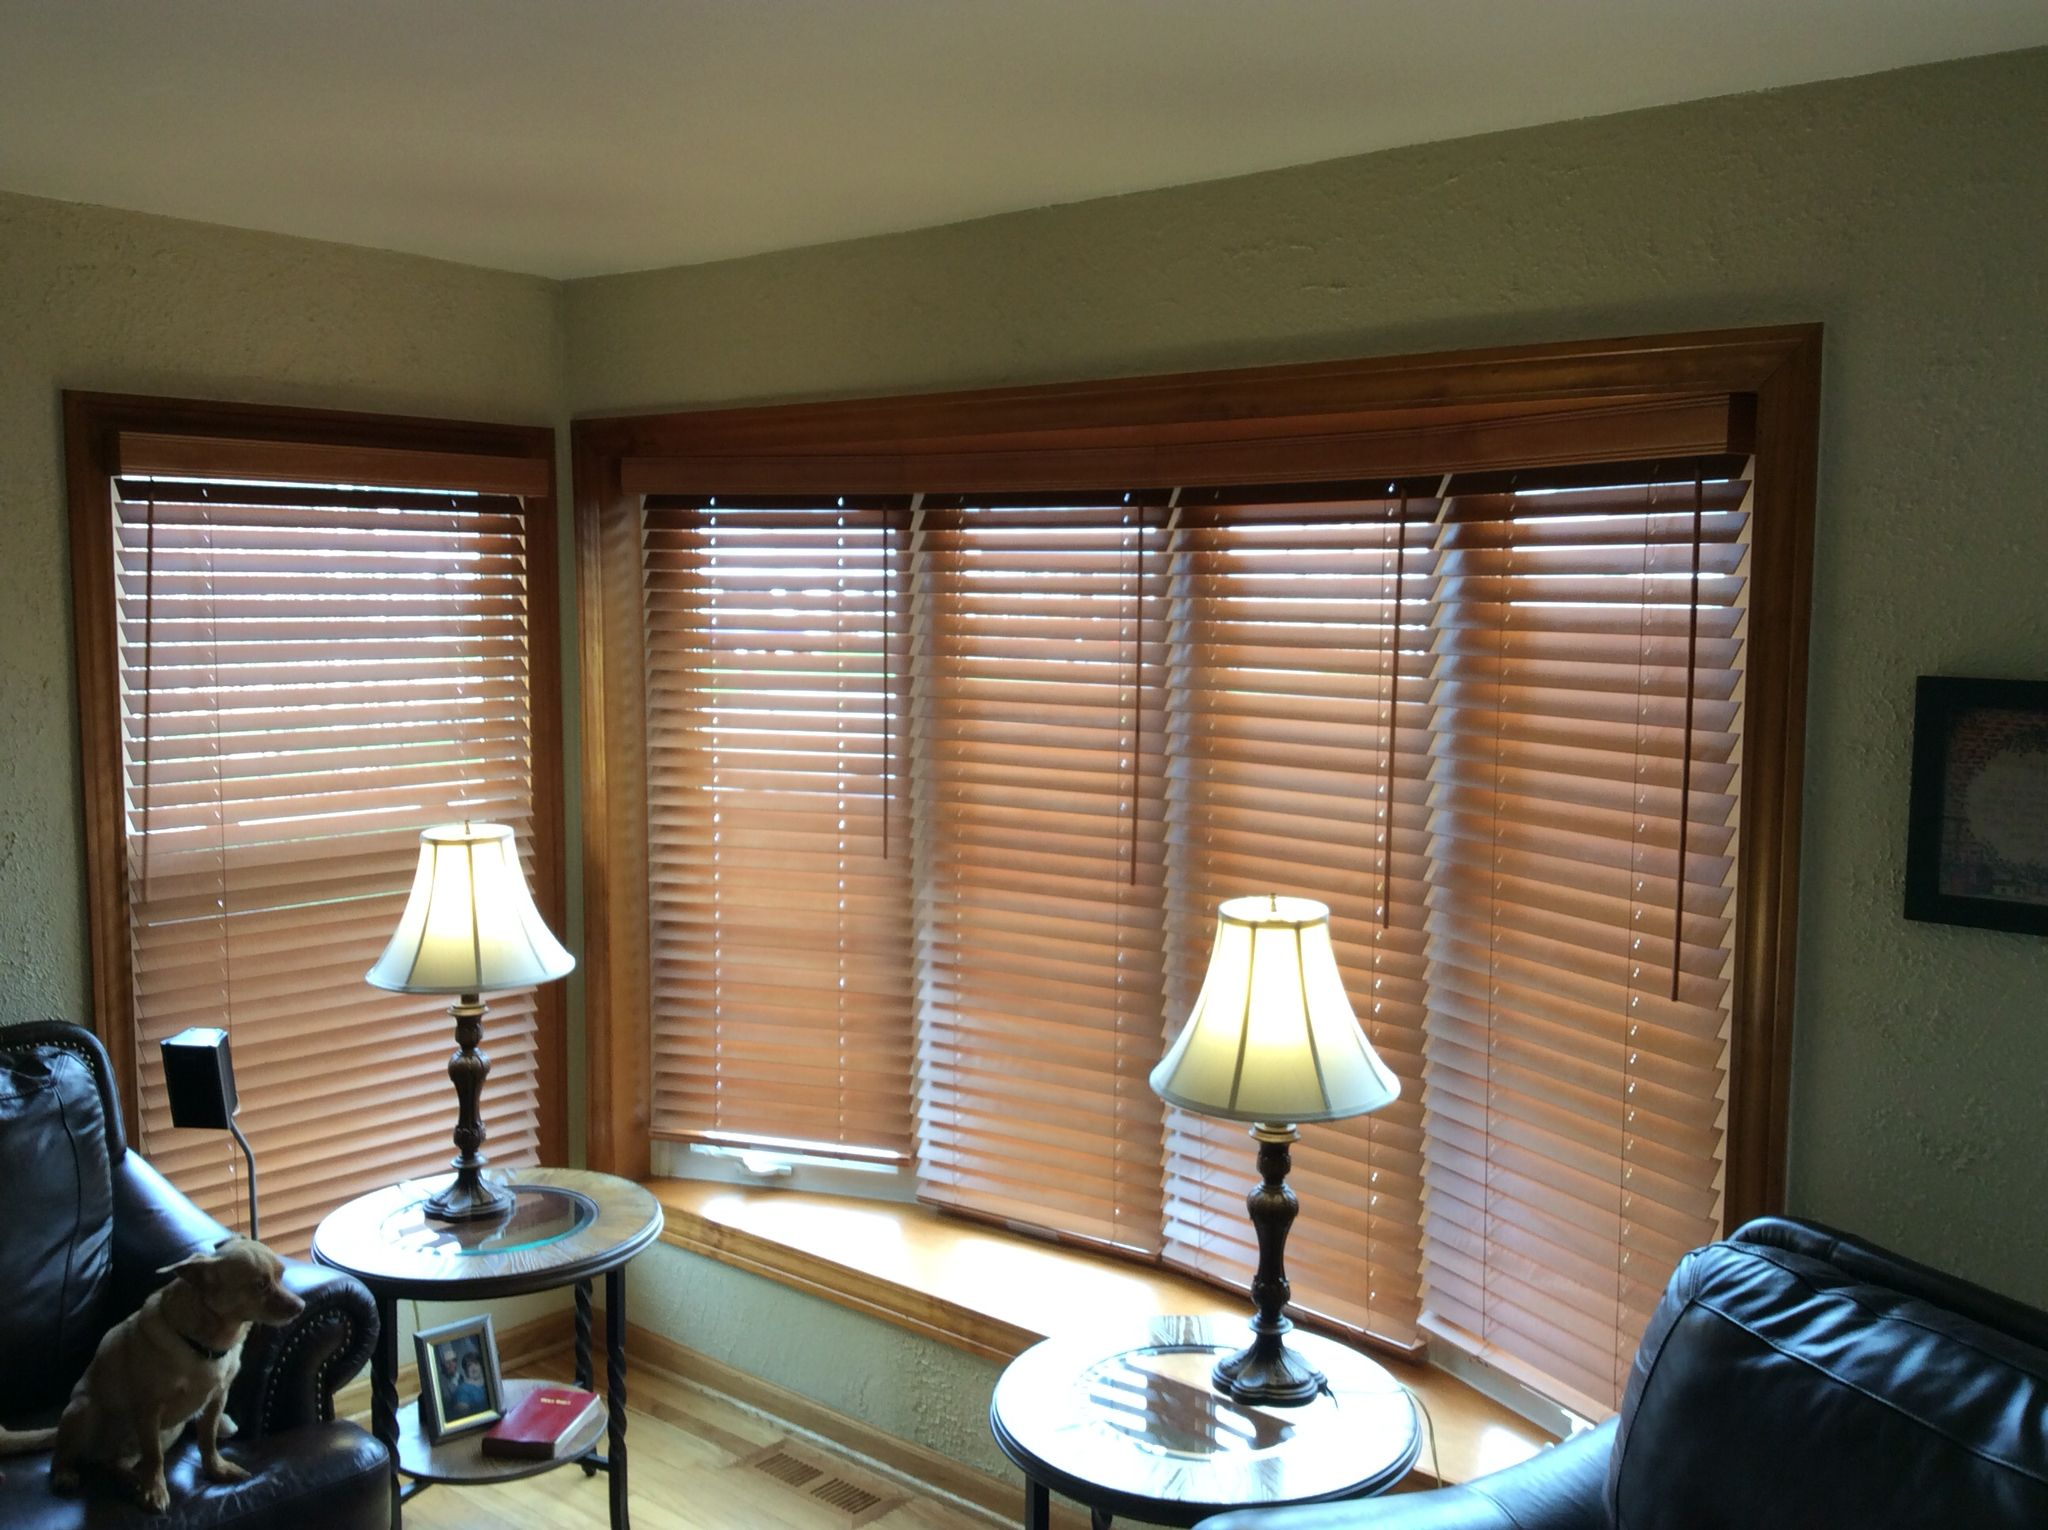 shades page cordless specials in sale wood window promosad shutter colorado springs blinds